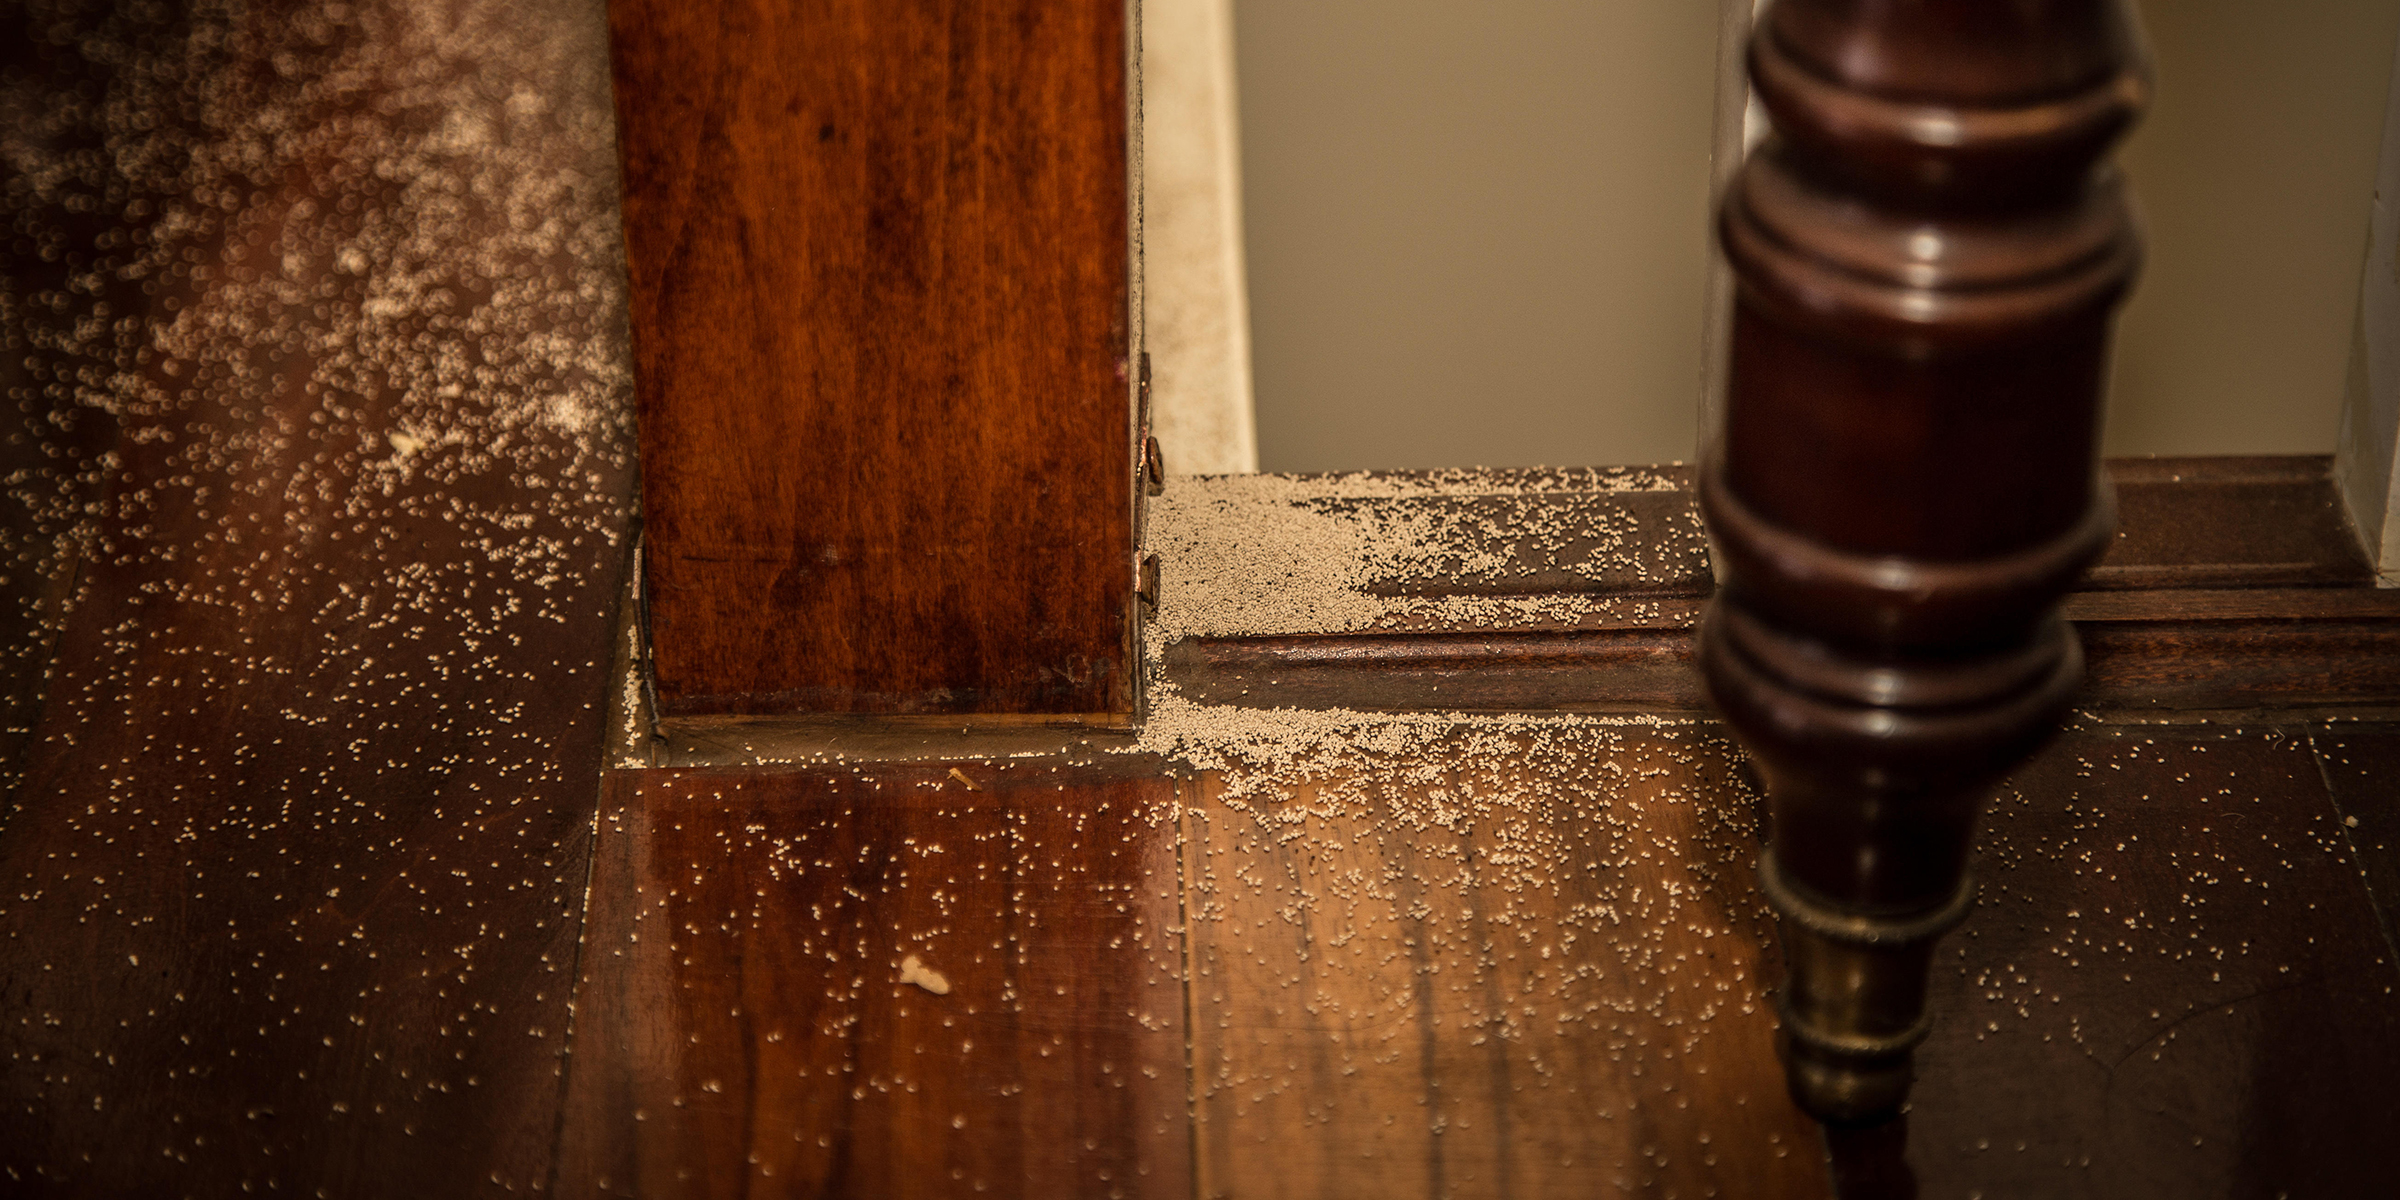 How to get rid of termites: Termite treatments, signs to know